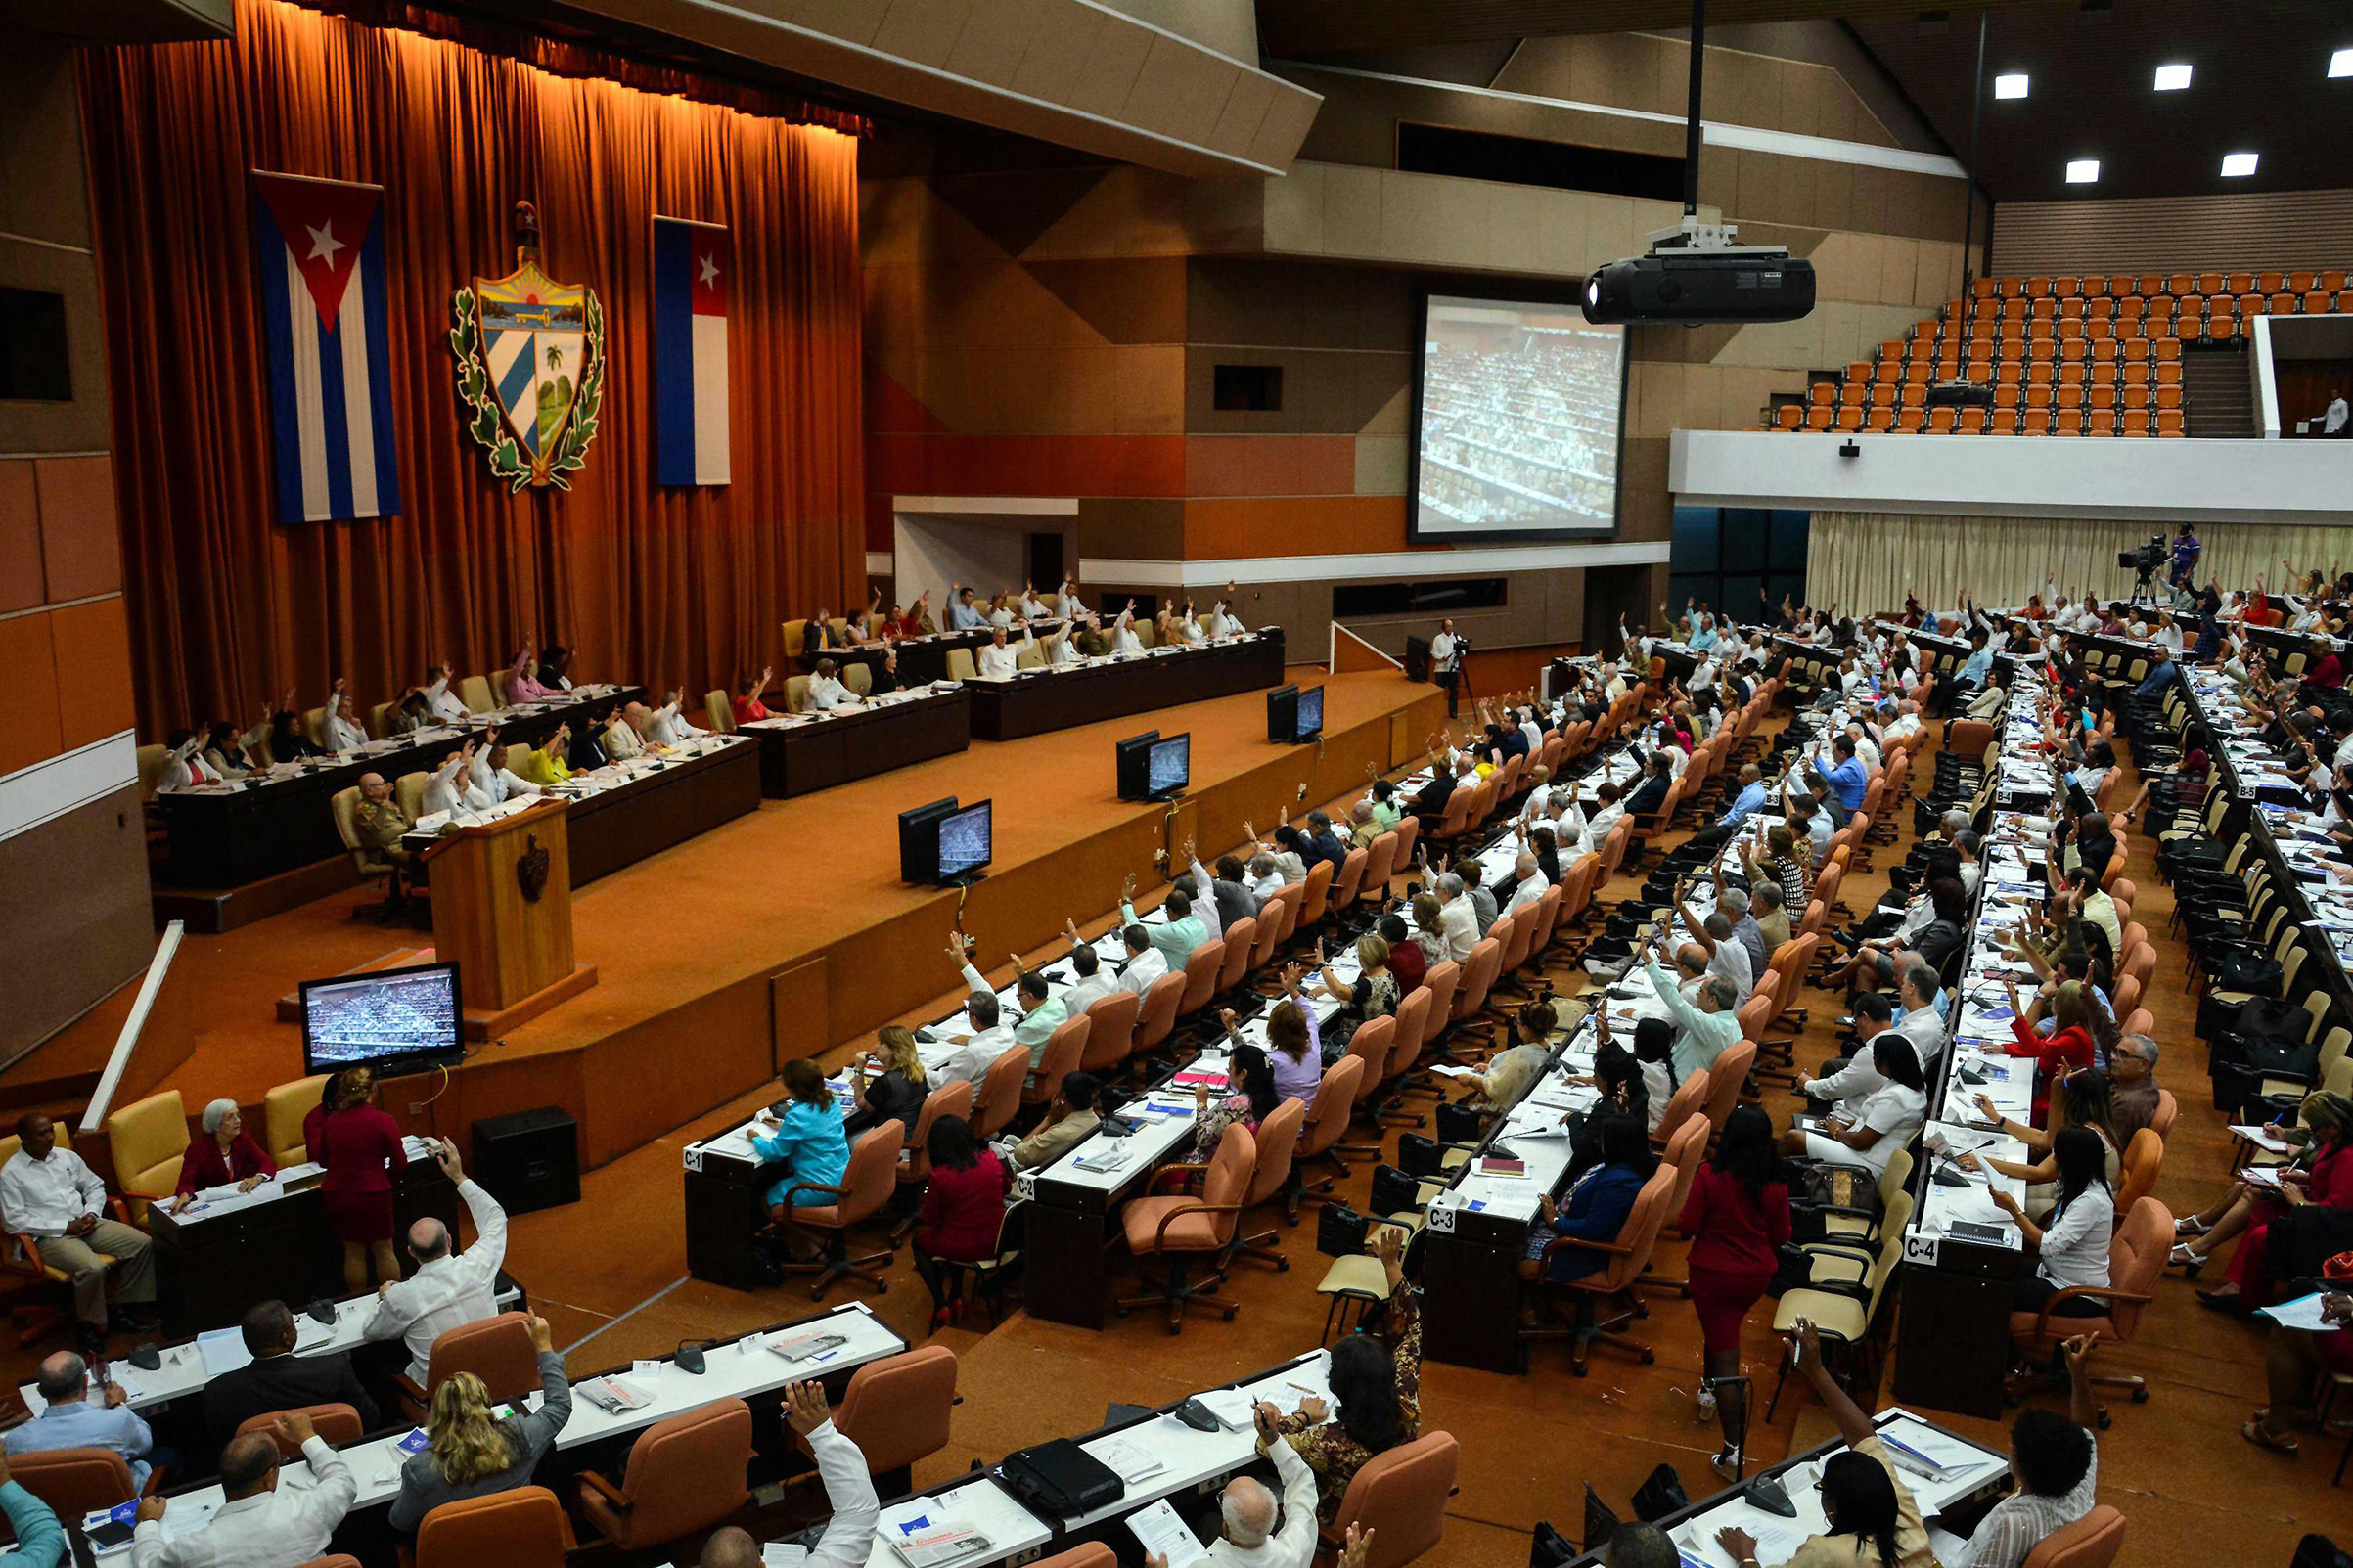 General view of the plenary of the first regular session of the IX Legislature of the National Assembly, in Havana, Cuba, 21 July 2018. The National Assembly of Cuba (Unicameral Parliament) began today three days of debates on the project to update the current Constitution (1976), in a plenary session that began with the appointment of the new Council of Ministers of President Miguel DÌaz-Canel.